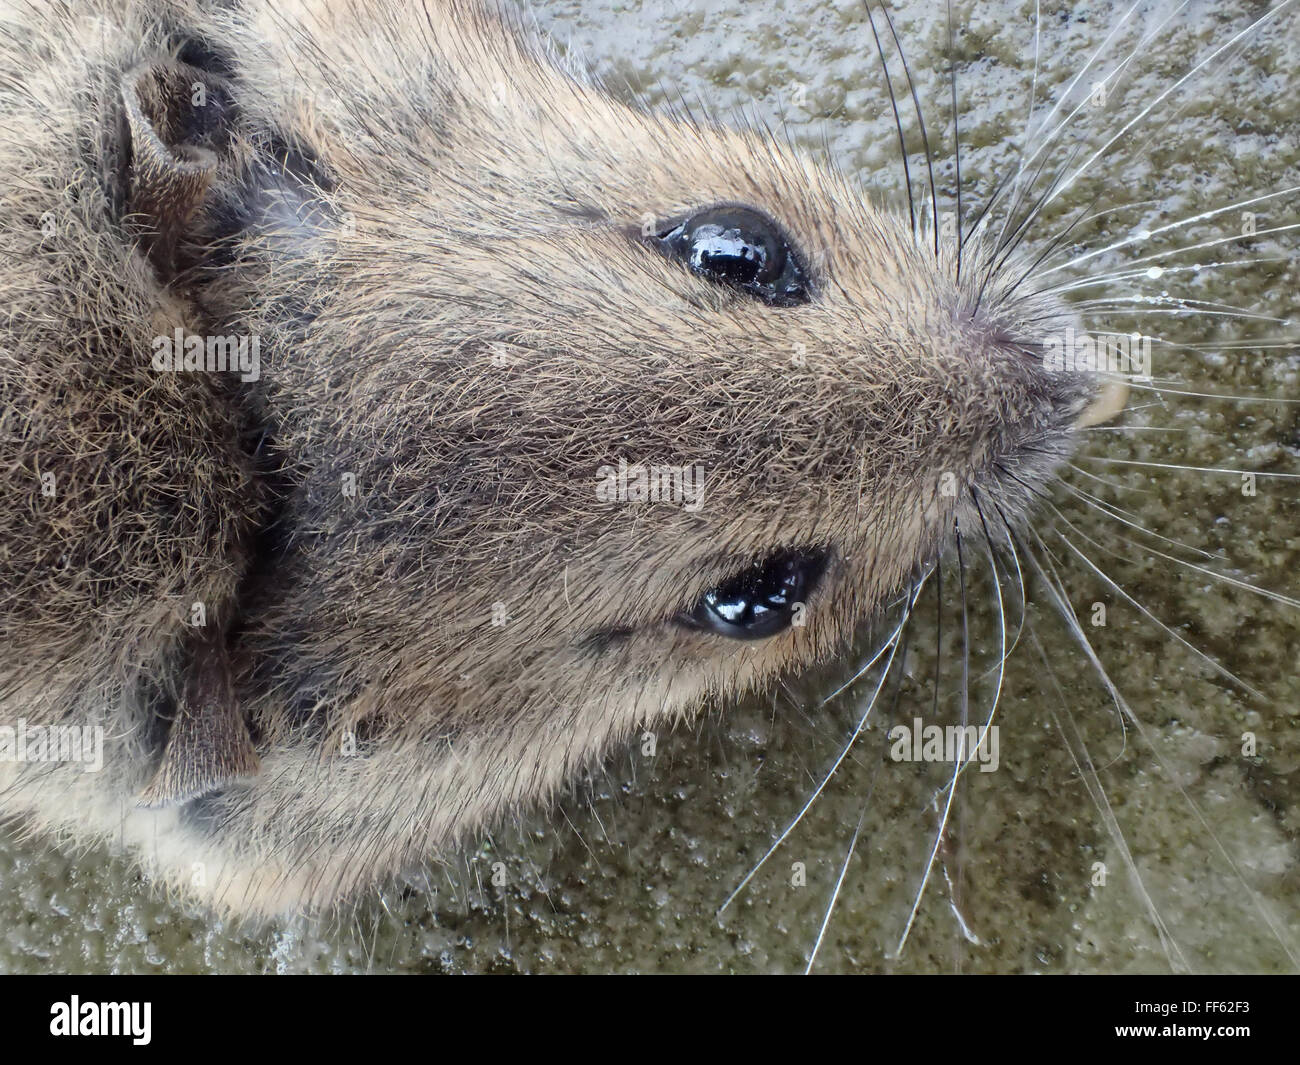 Macro dorsal view of head of dead house mouse (Mus musculus) killed by mouse trap, on limestone paving slab - Stock Image